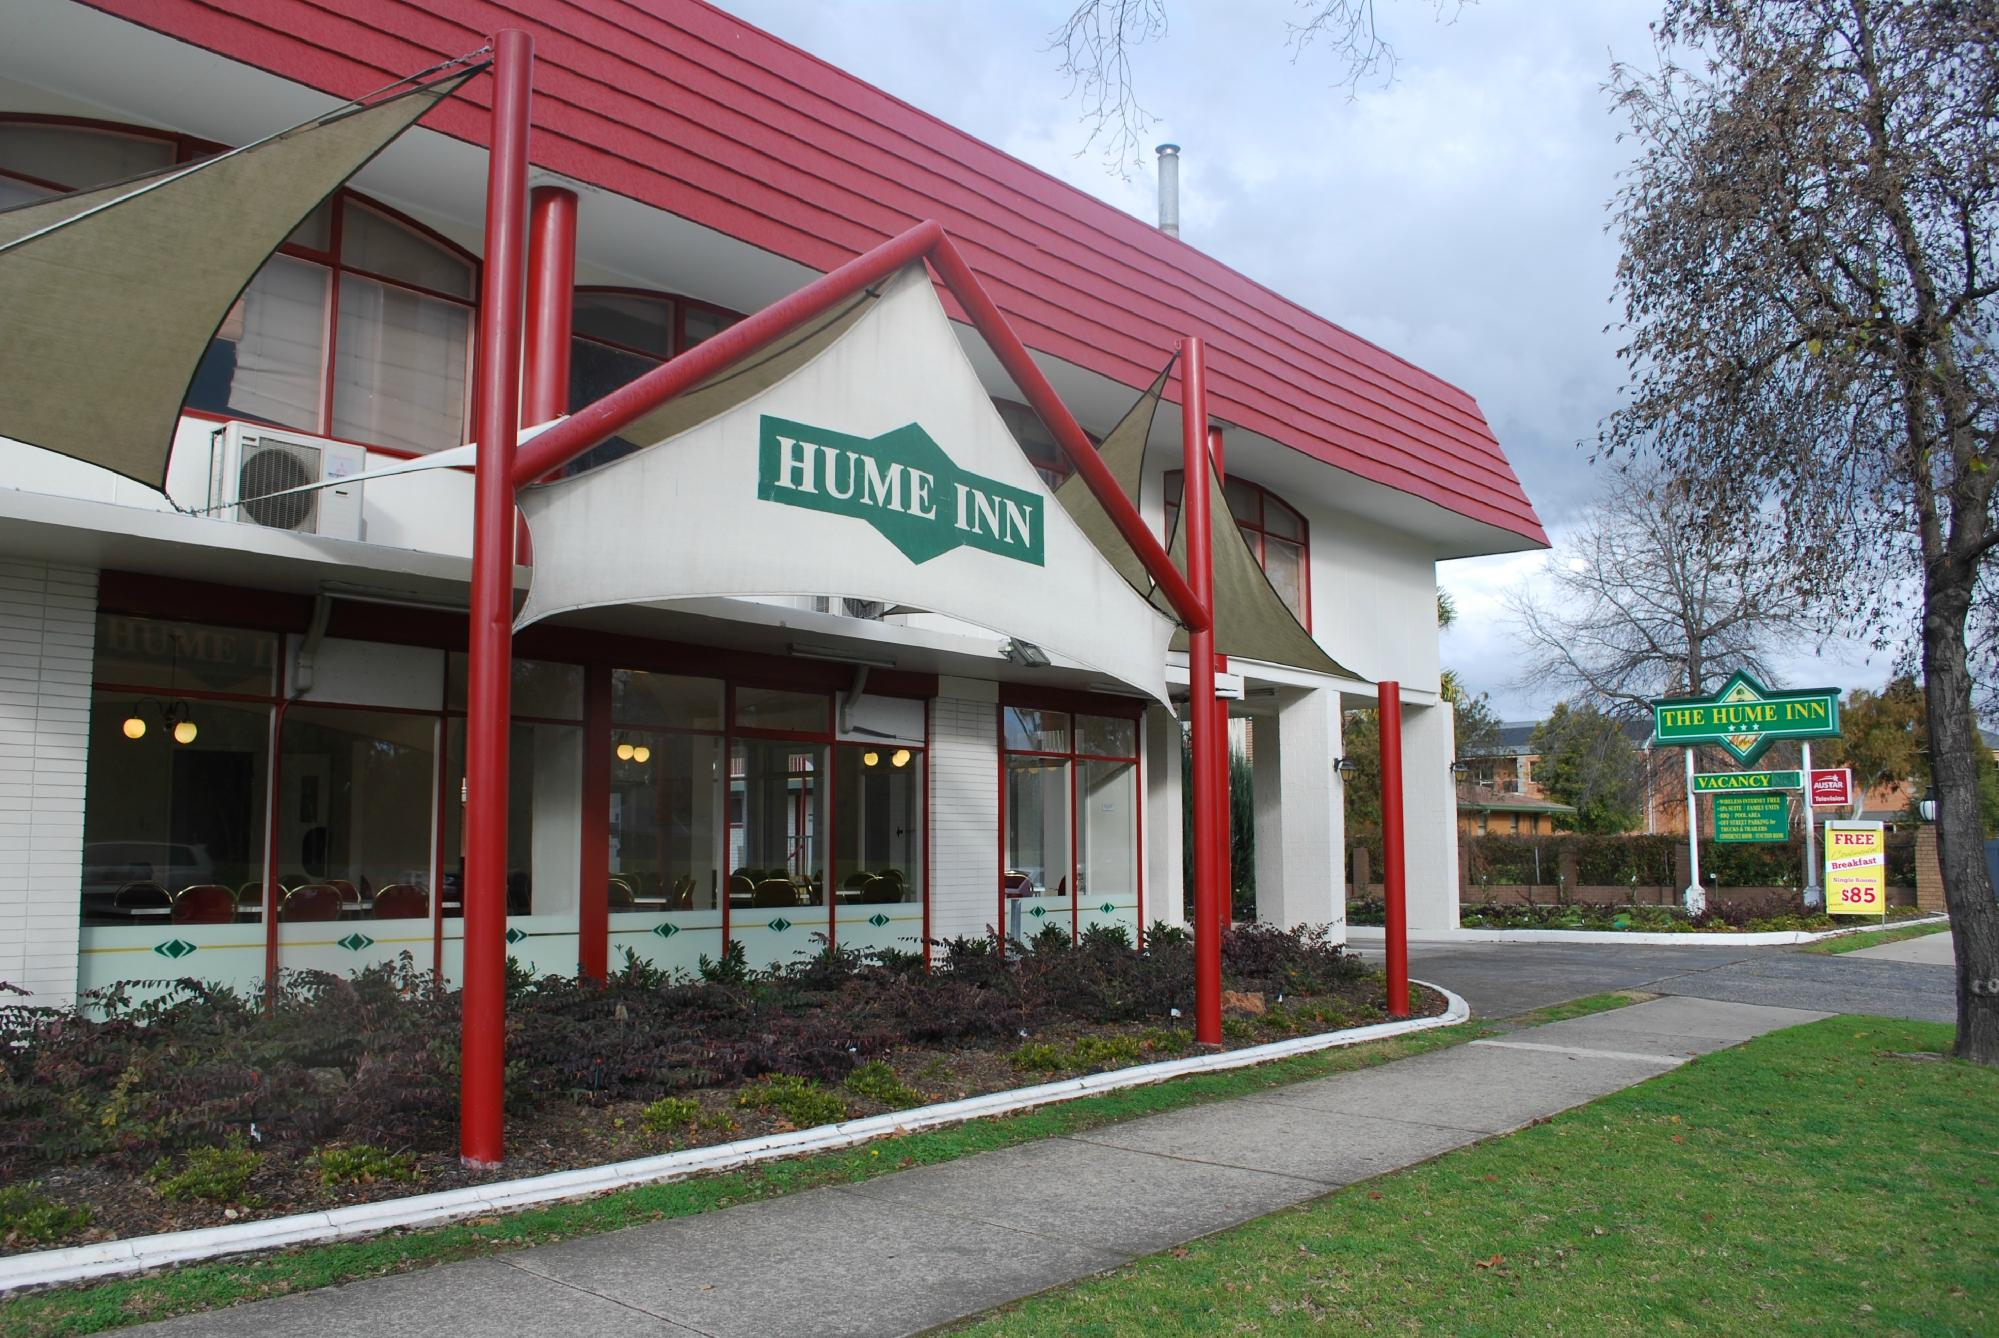 The Hume Inn Motel